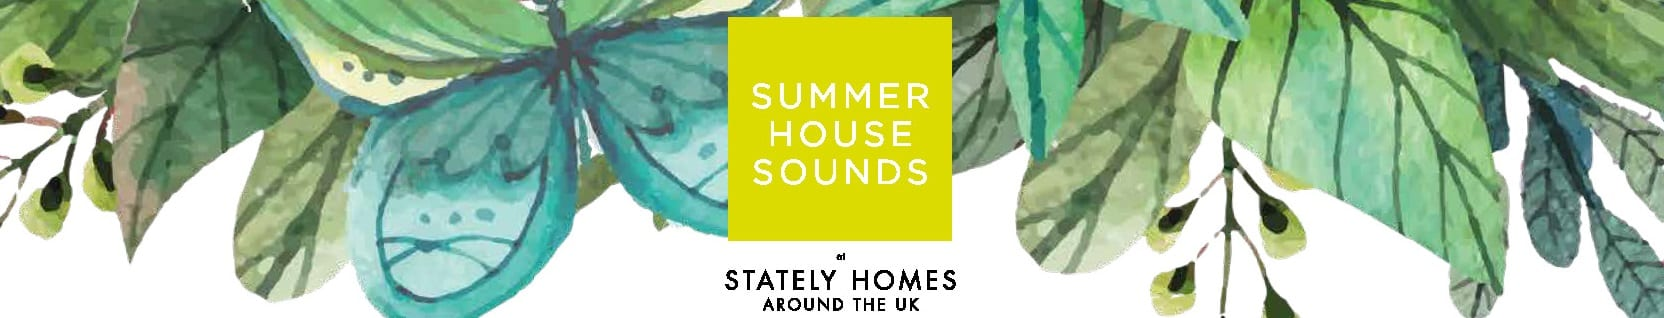 SUMMER HOUSE SOUNDS: New Series of UK Concerts Announced for 2018